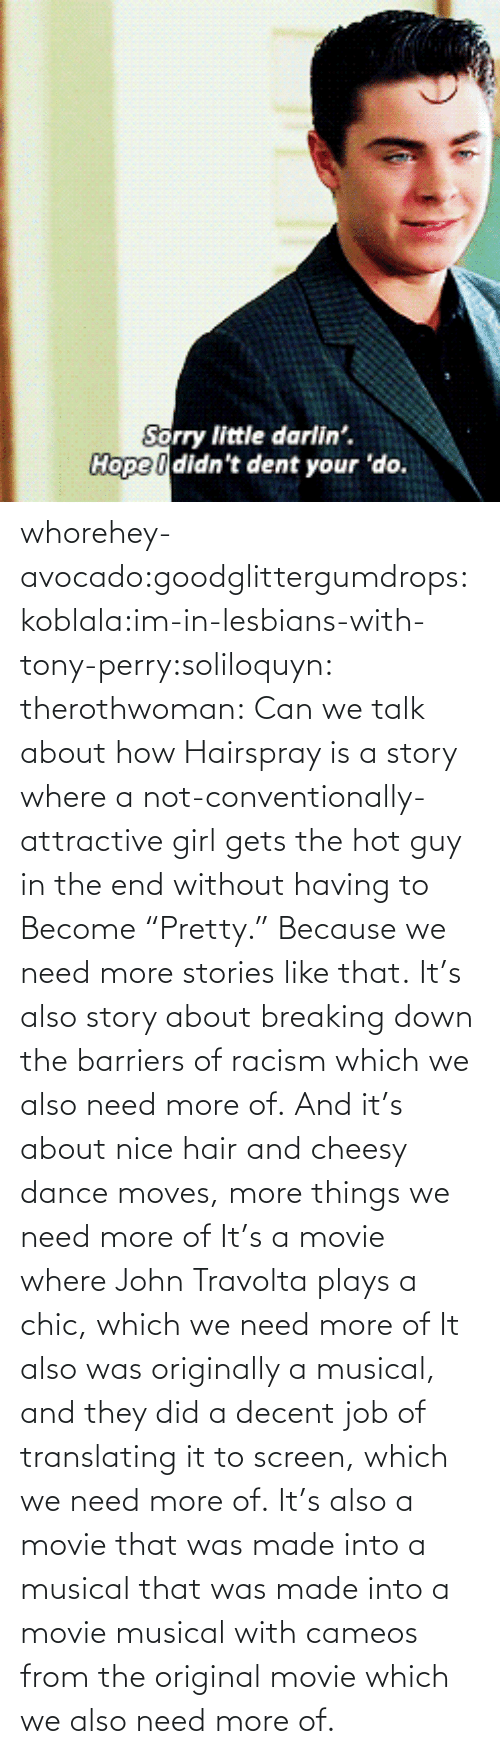 "Translating: Sorry little darlin'.  Hope I didn't dent your 'do. whorehey-avocado:goodglittergumdrops:koblala:im-in-lesbians-with-tony-perry:soliloquyn:  therothwoman:  Can we talk about how Hairspray is a story where a not-conventionally-attractive girl gets the hot guy in the end without having to Become ""Pretty."" Because we need more stories like that.  It's also story about breaking down the barriers of racism which we also need more of.  And it's about nice hair and cheesy dance moves, more things we need more of  It's a movie where John Travolta plays a chic, which we need more of  It also was originally a musical, and they did a decent job of translating it to screen, which we need more of.   It's also a movie that was made into a musical that was made into a movie musical with cameos from the original movie which we also need more of."